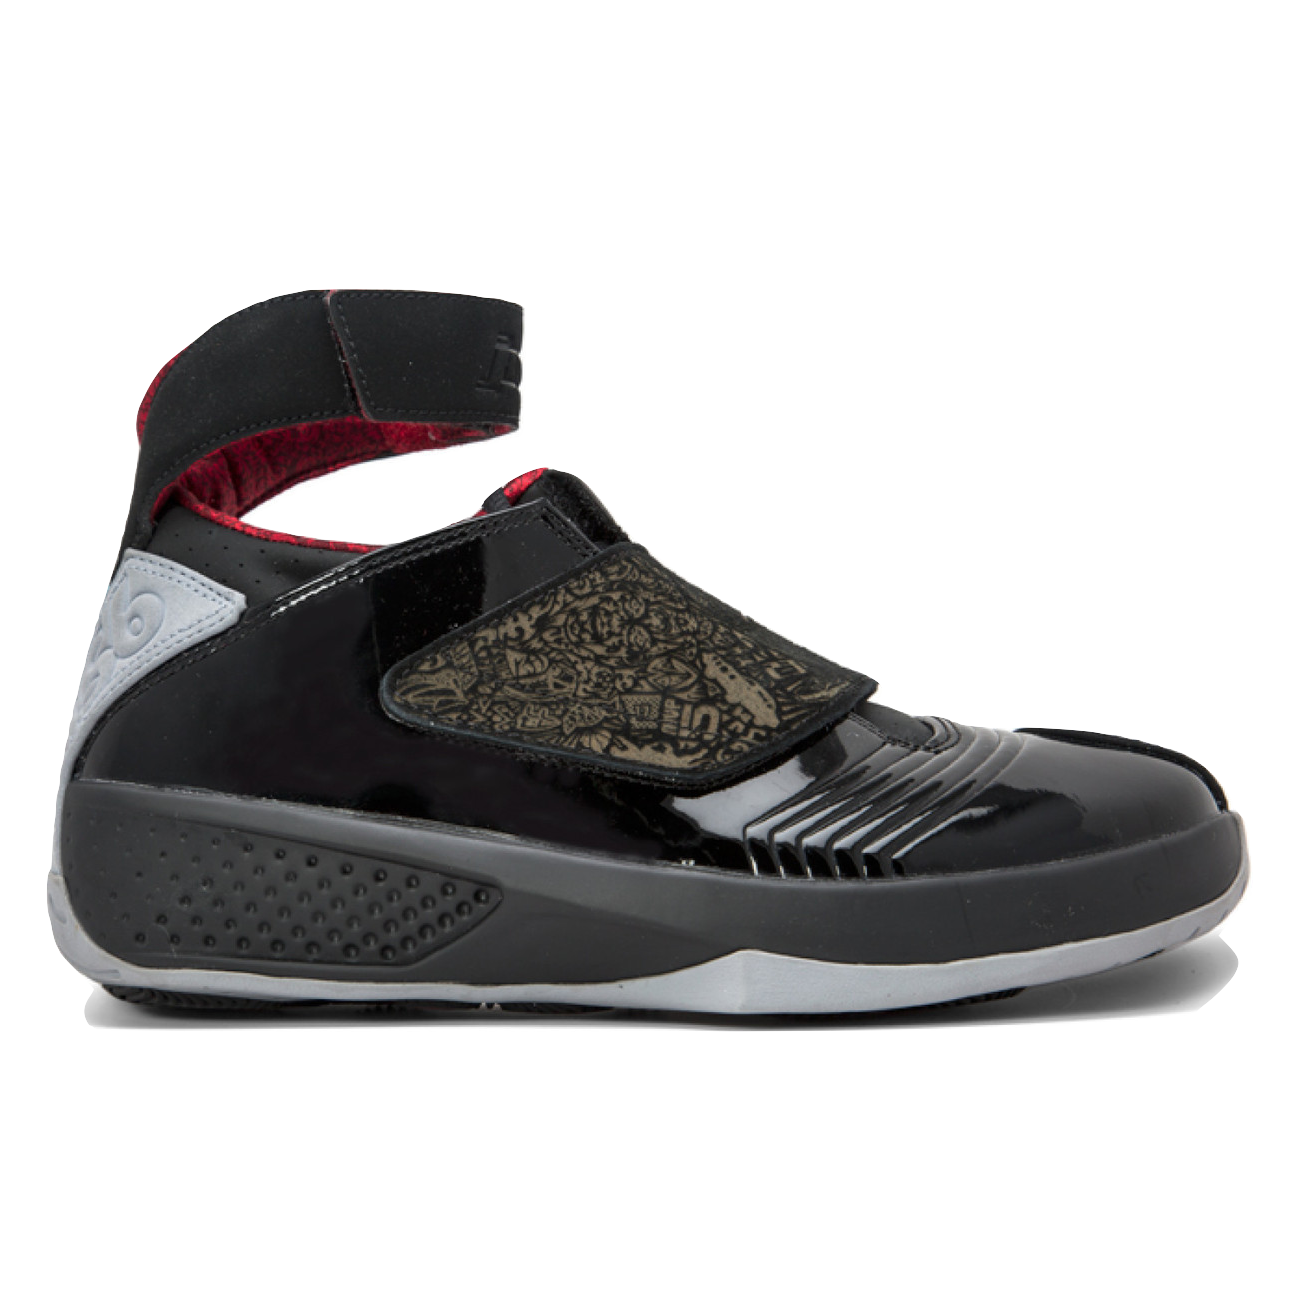 Air Jordan 20 - Stealth (2015)